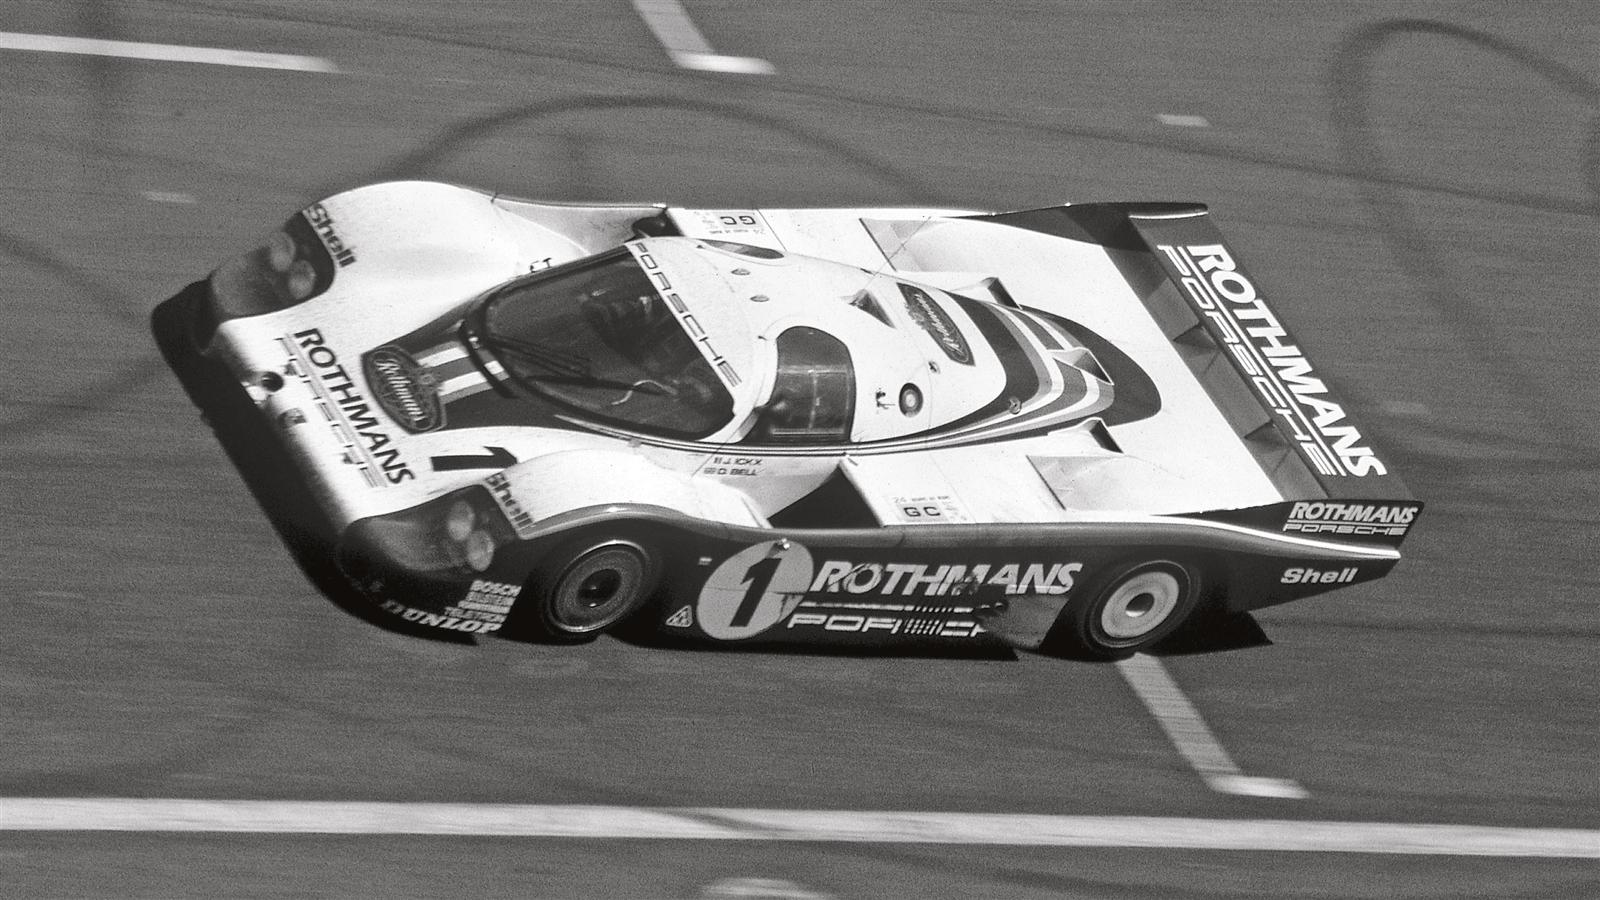 Porsche 956 long-tail at Le Mans in 1982